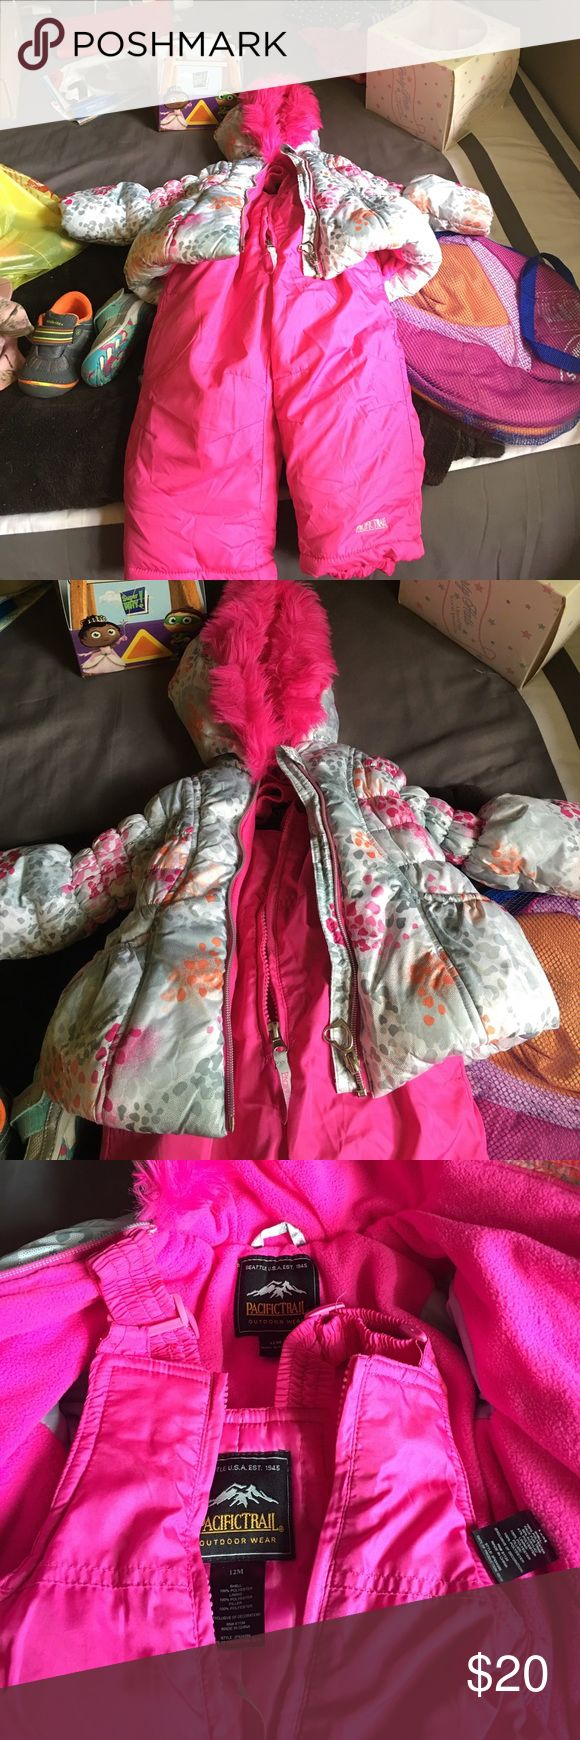 12M size snow suit and jacket worn once Girls 12 month size snow suit and jacket worn once Pacific Trail Jackets & Coats Puffers